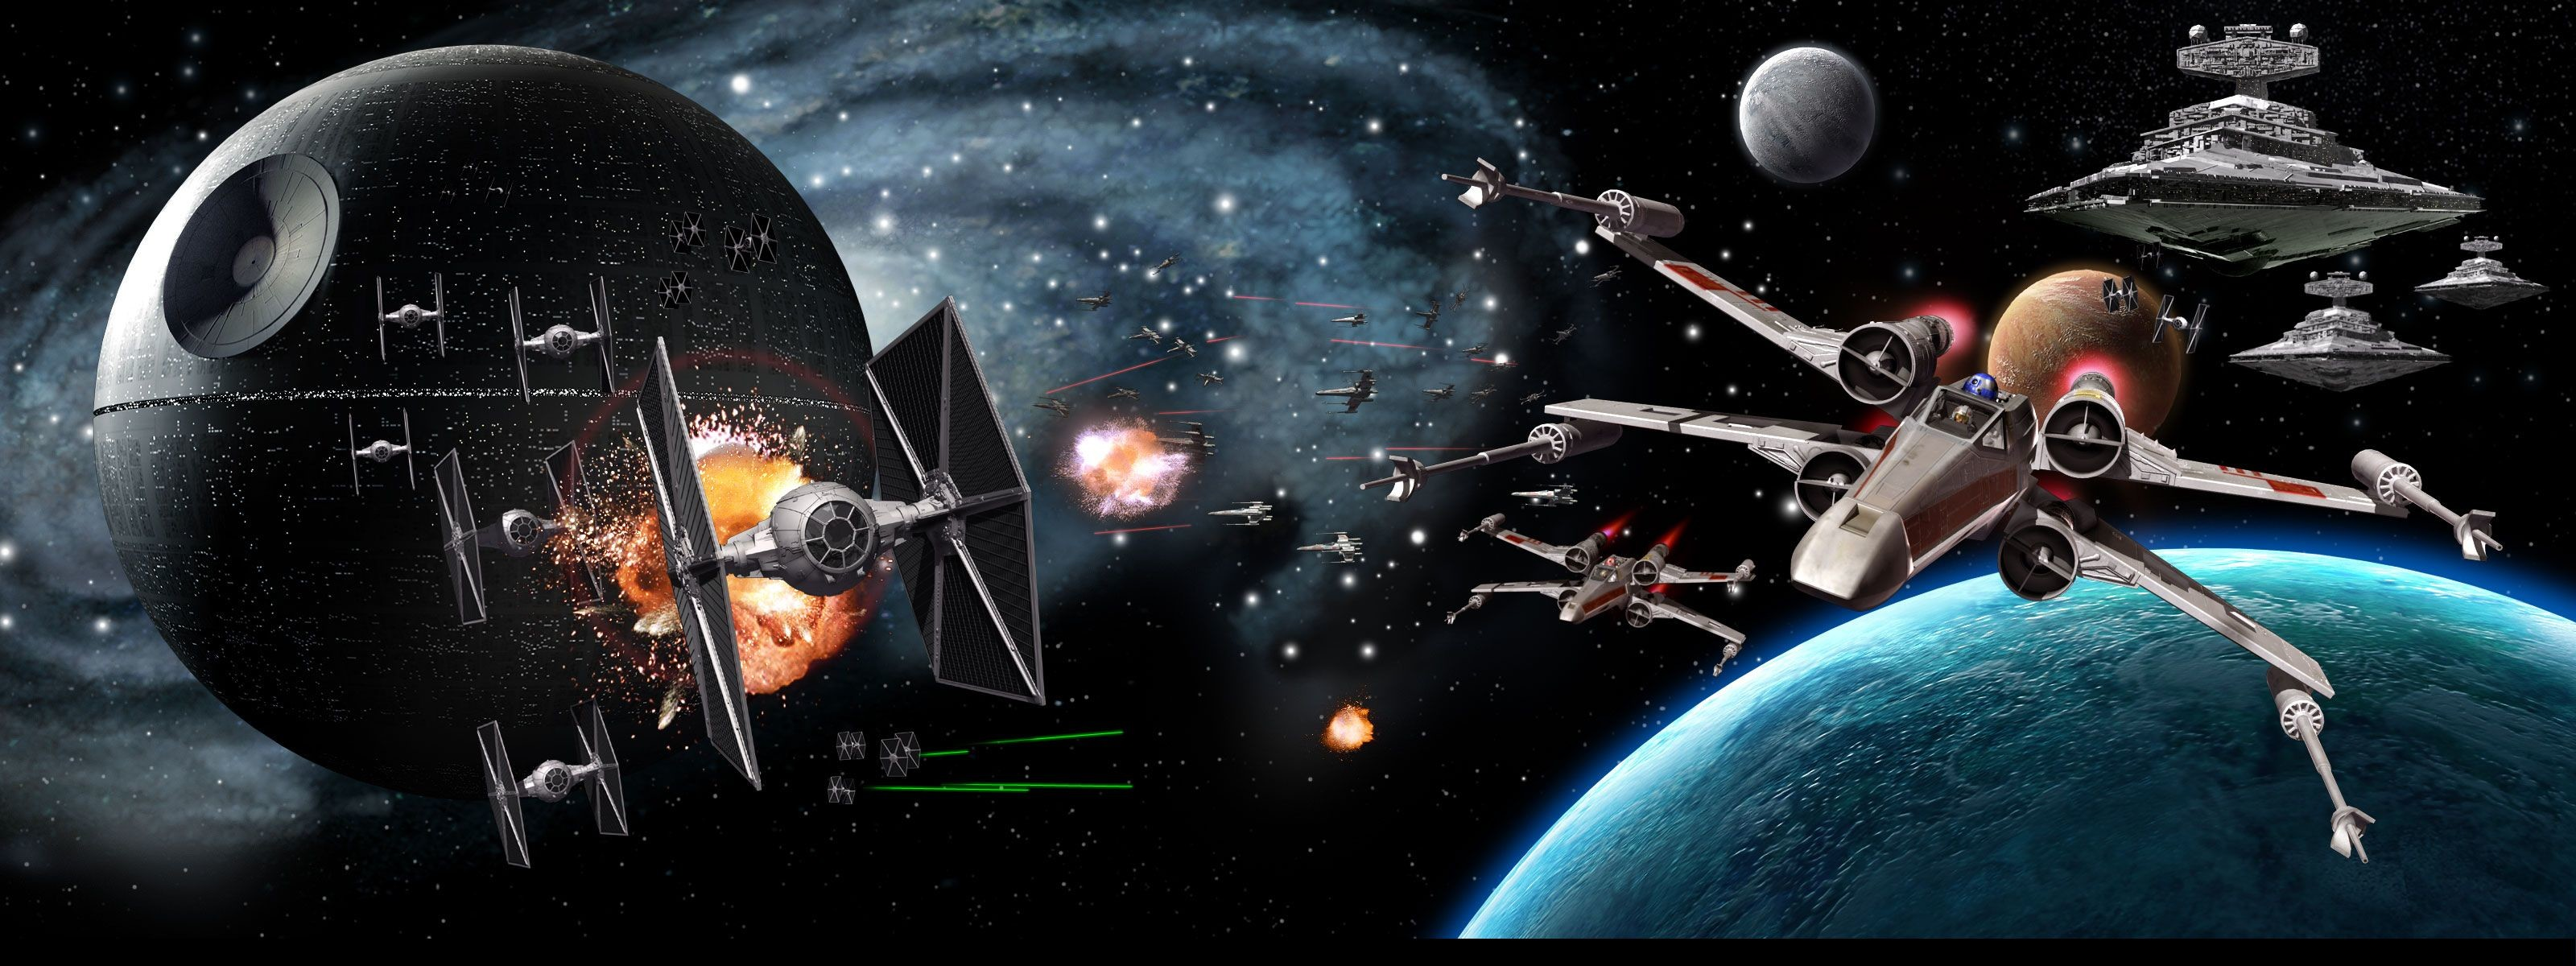 Star Wars 3 Monitor Wallpaper  22  images  3200x1200